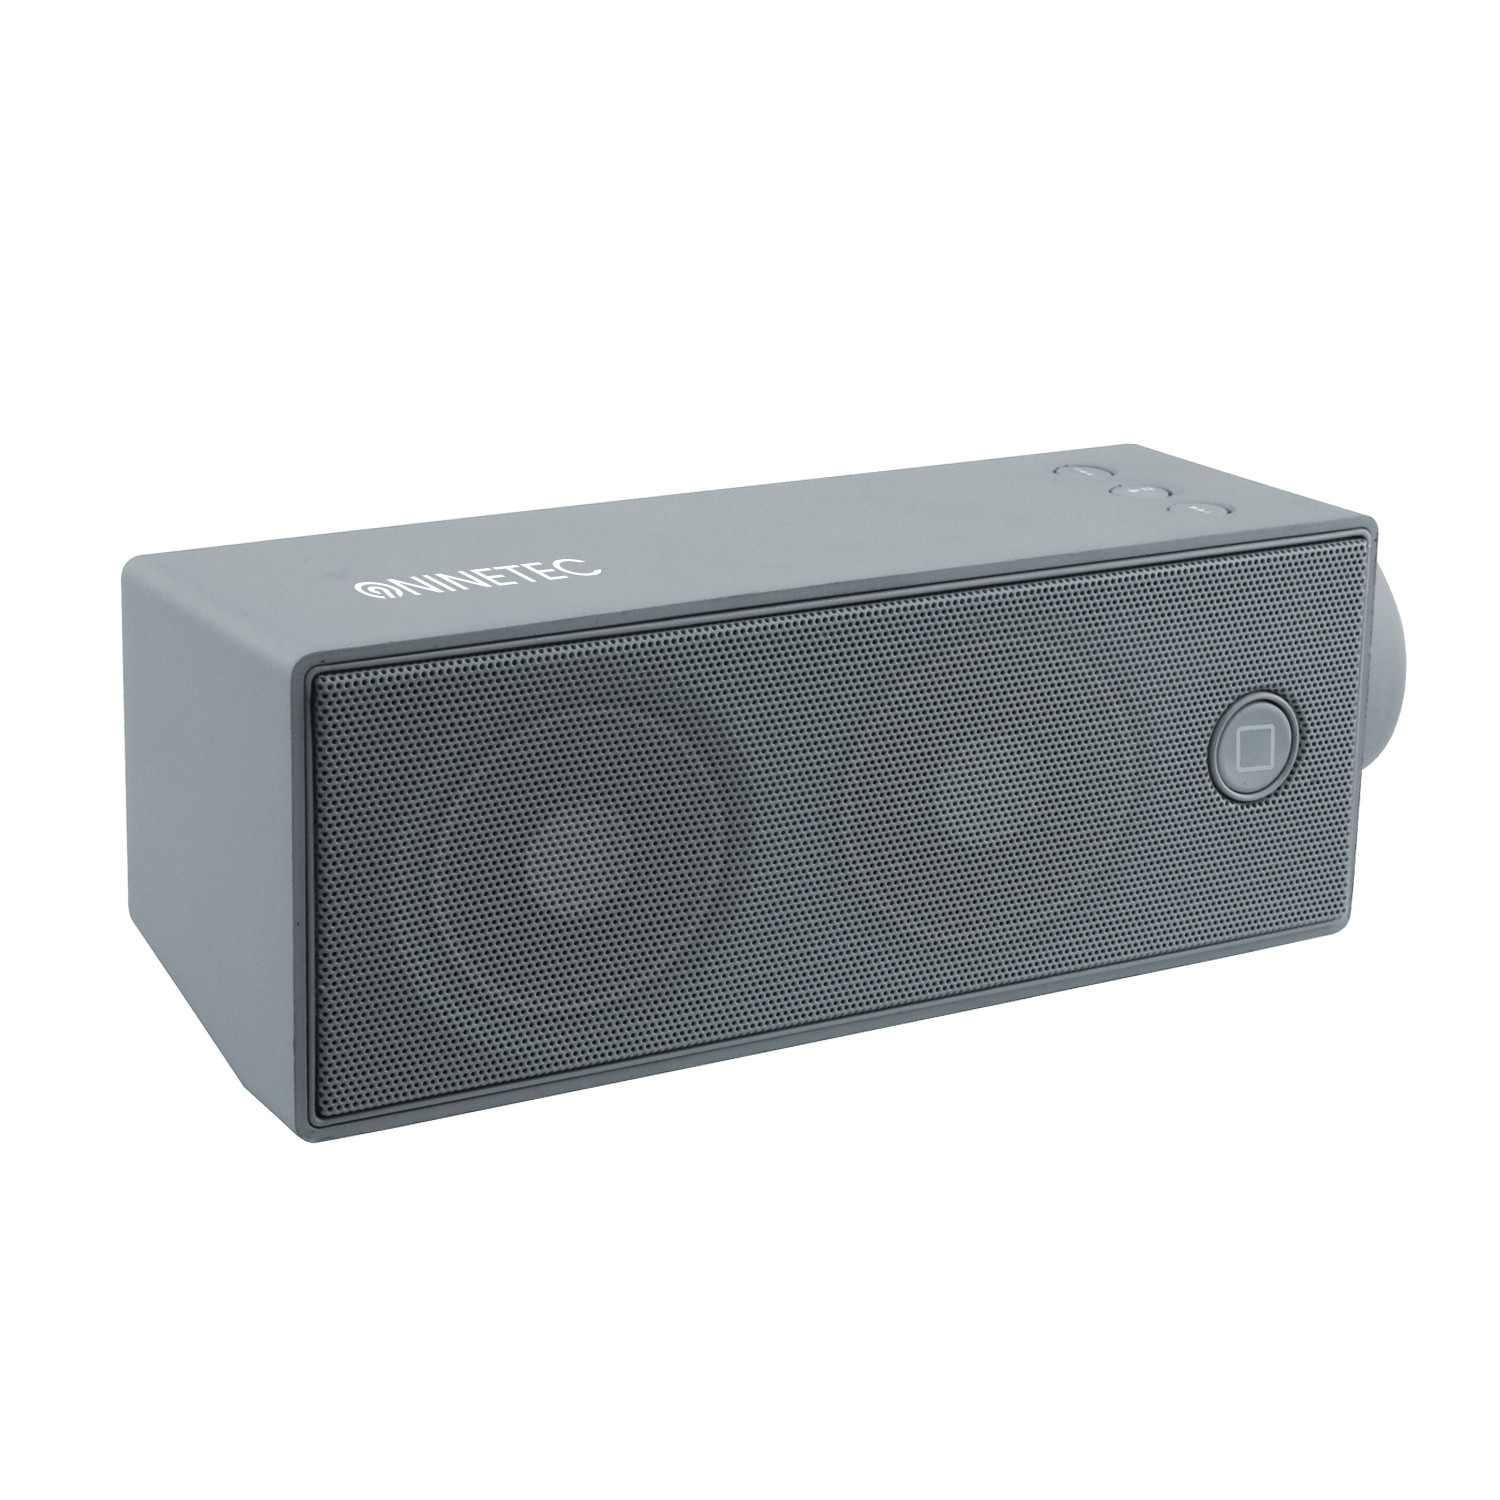 ninetec soundboost bluetooth speaker lautsprecher micro sd aux freisprechf grau ebay. Black Bedroom Furniture Sets. Home Design Ideas